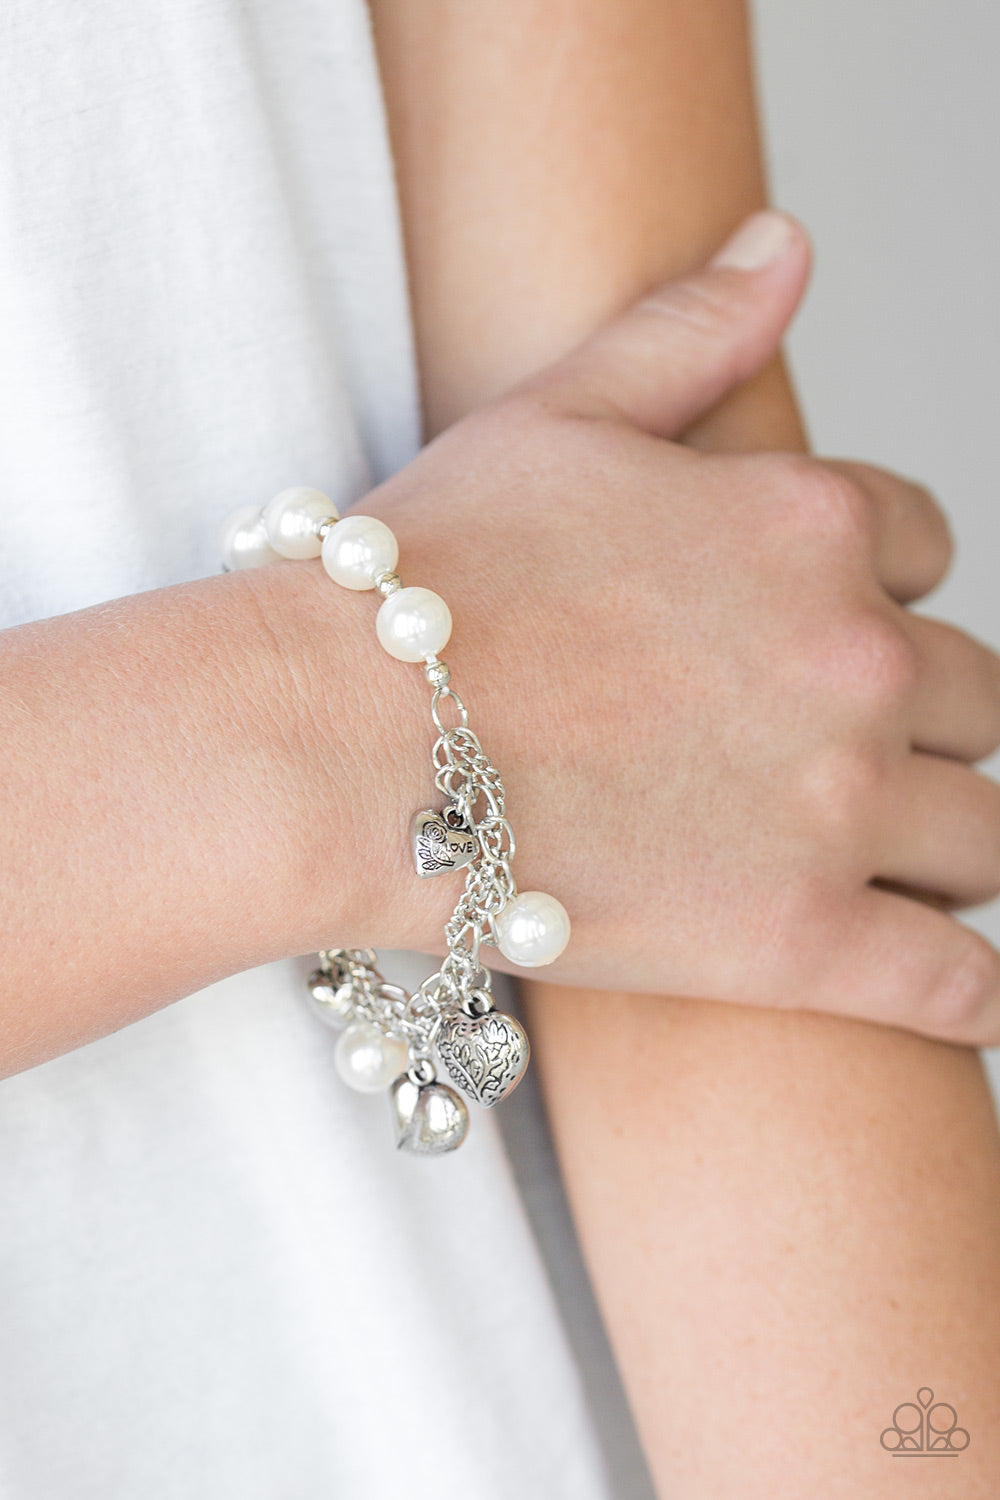 Paparazzi Accessories - More Amour - White Bracelet